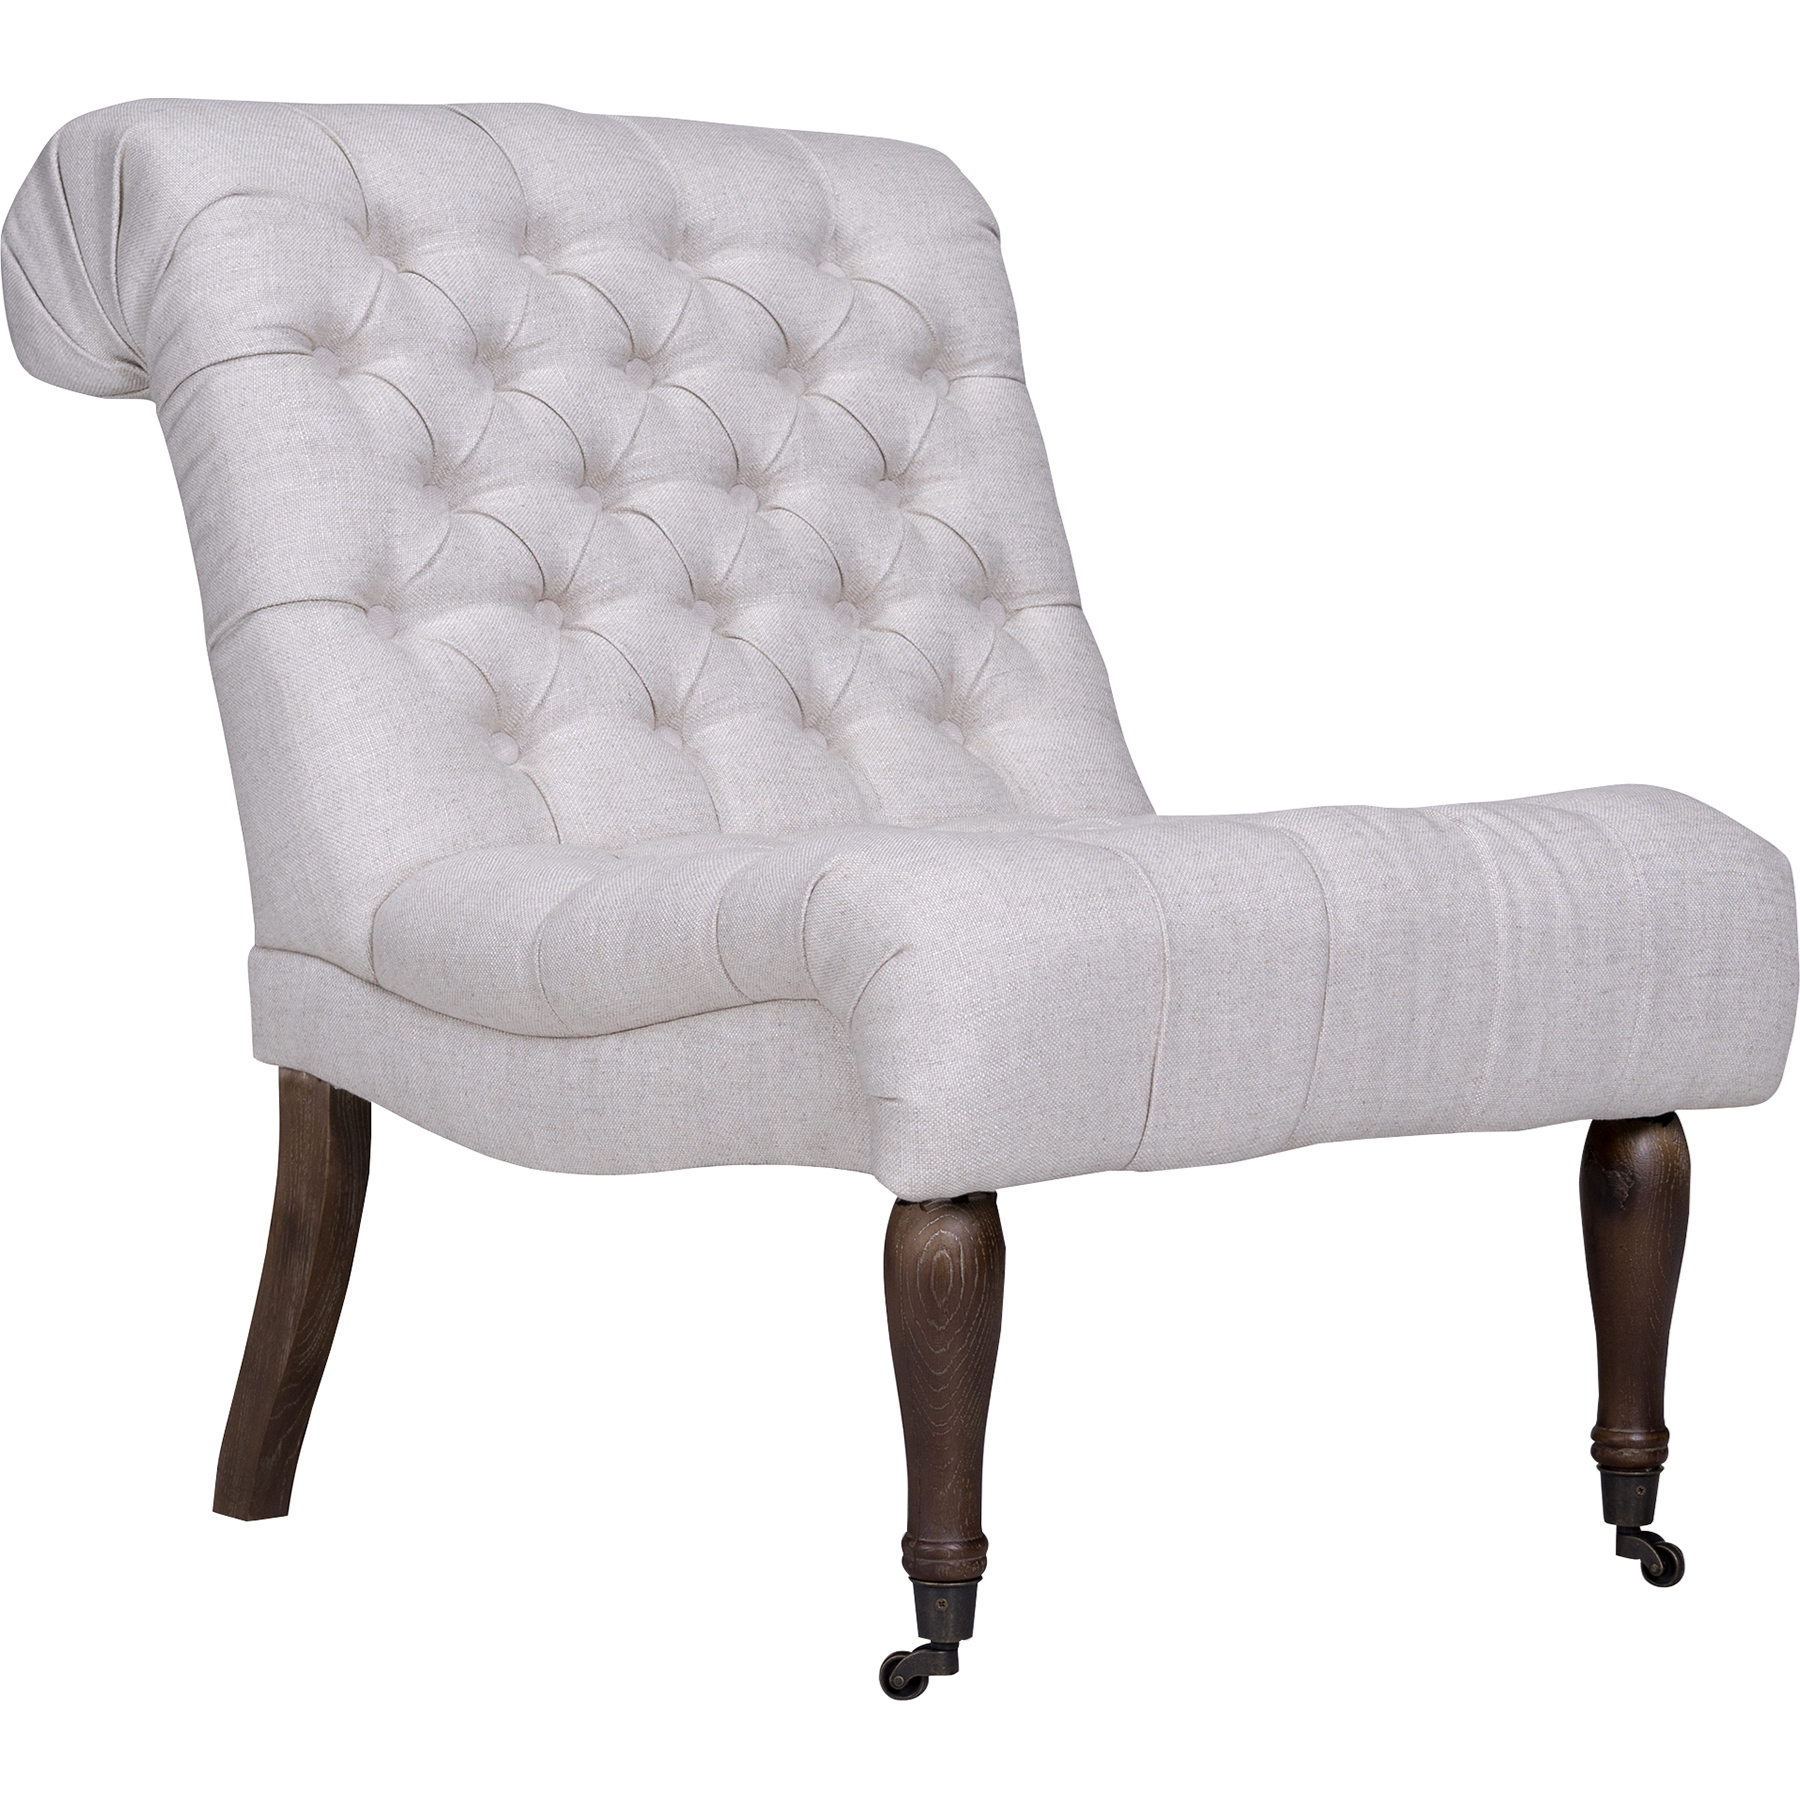 Braxton Armless Slipper Chair   Button Tufted, Brussels Linen    OHF 3754 01BRULIN ...